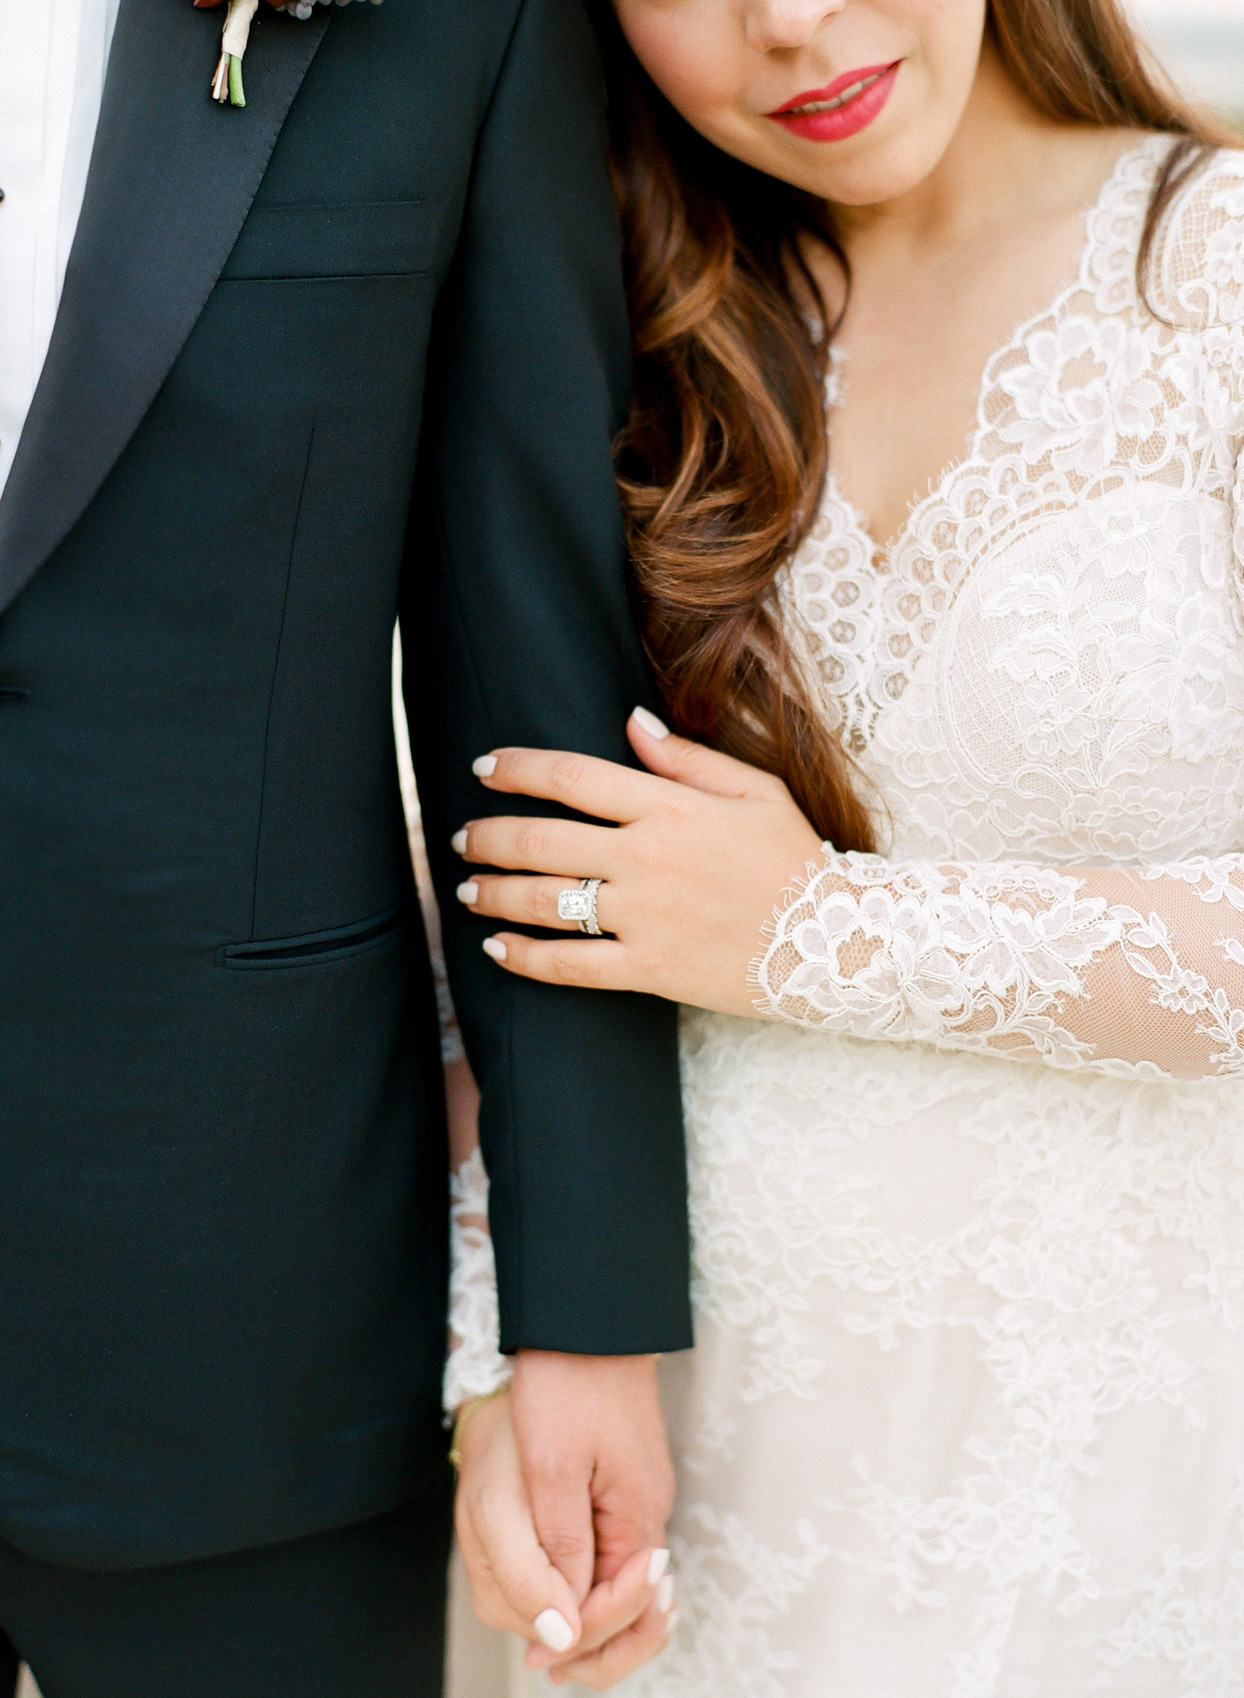 couple posing for close up portrait of bride's wedding ring